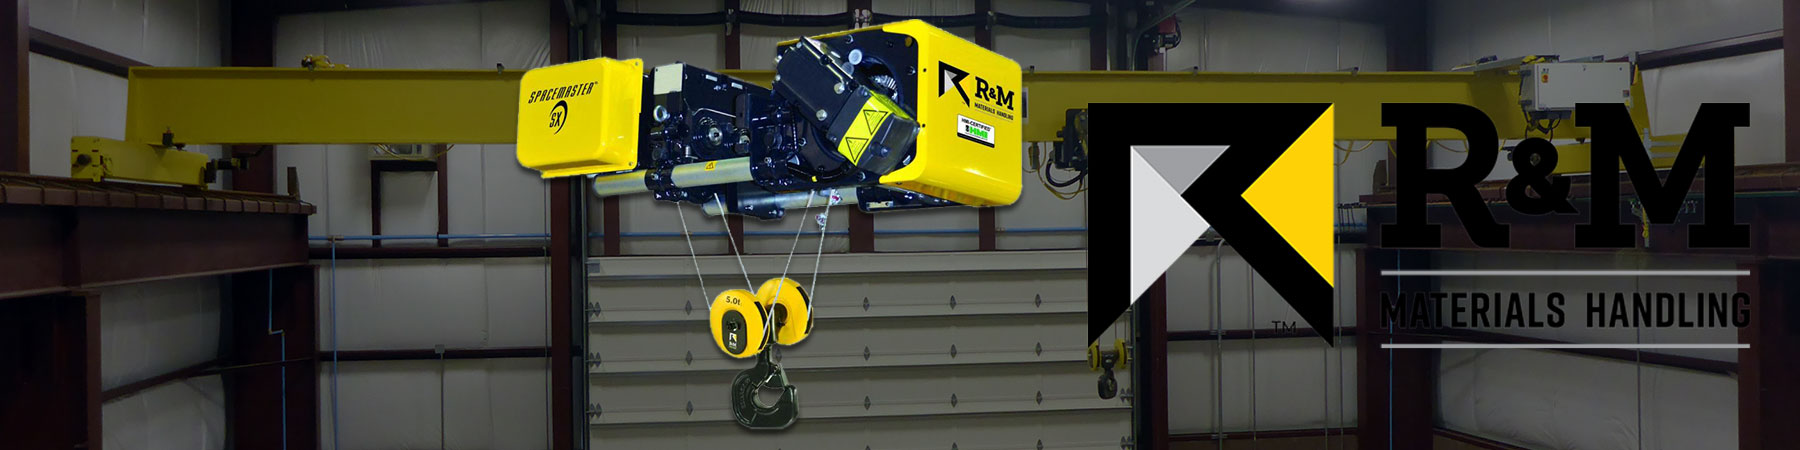 R&M Spacemaster SX Wire Rope Hoist